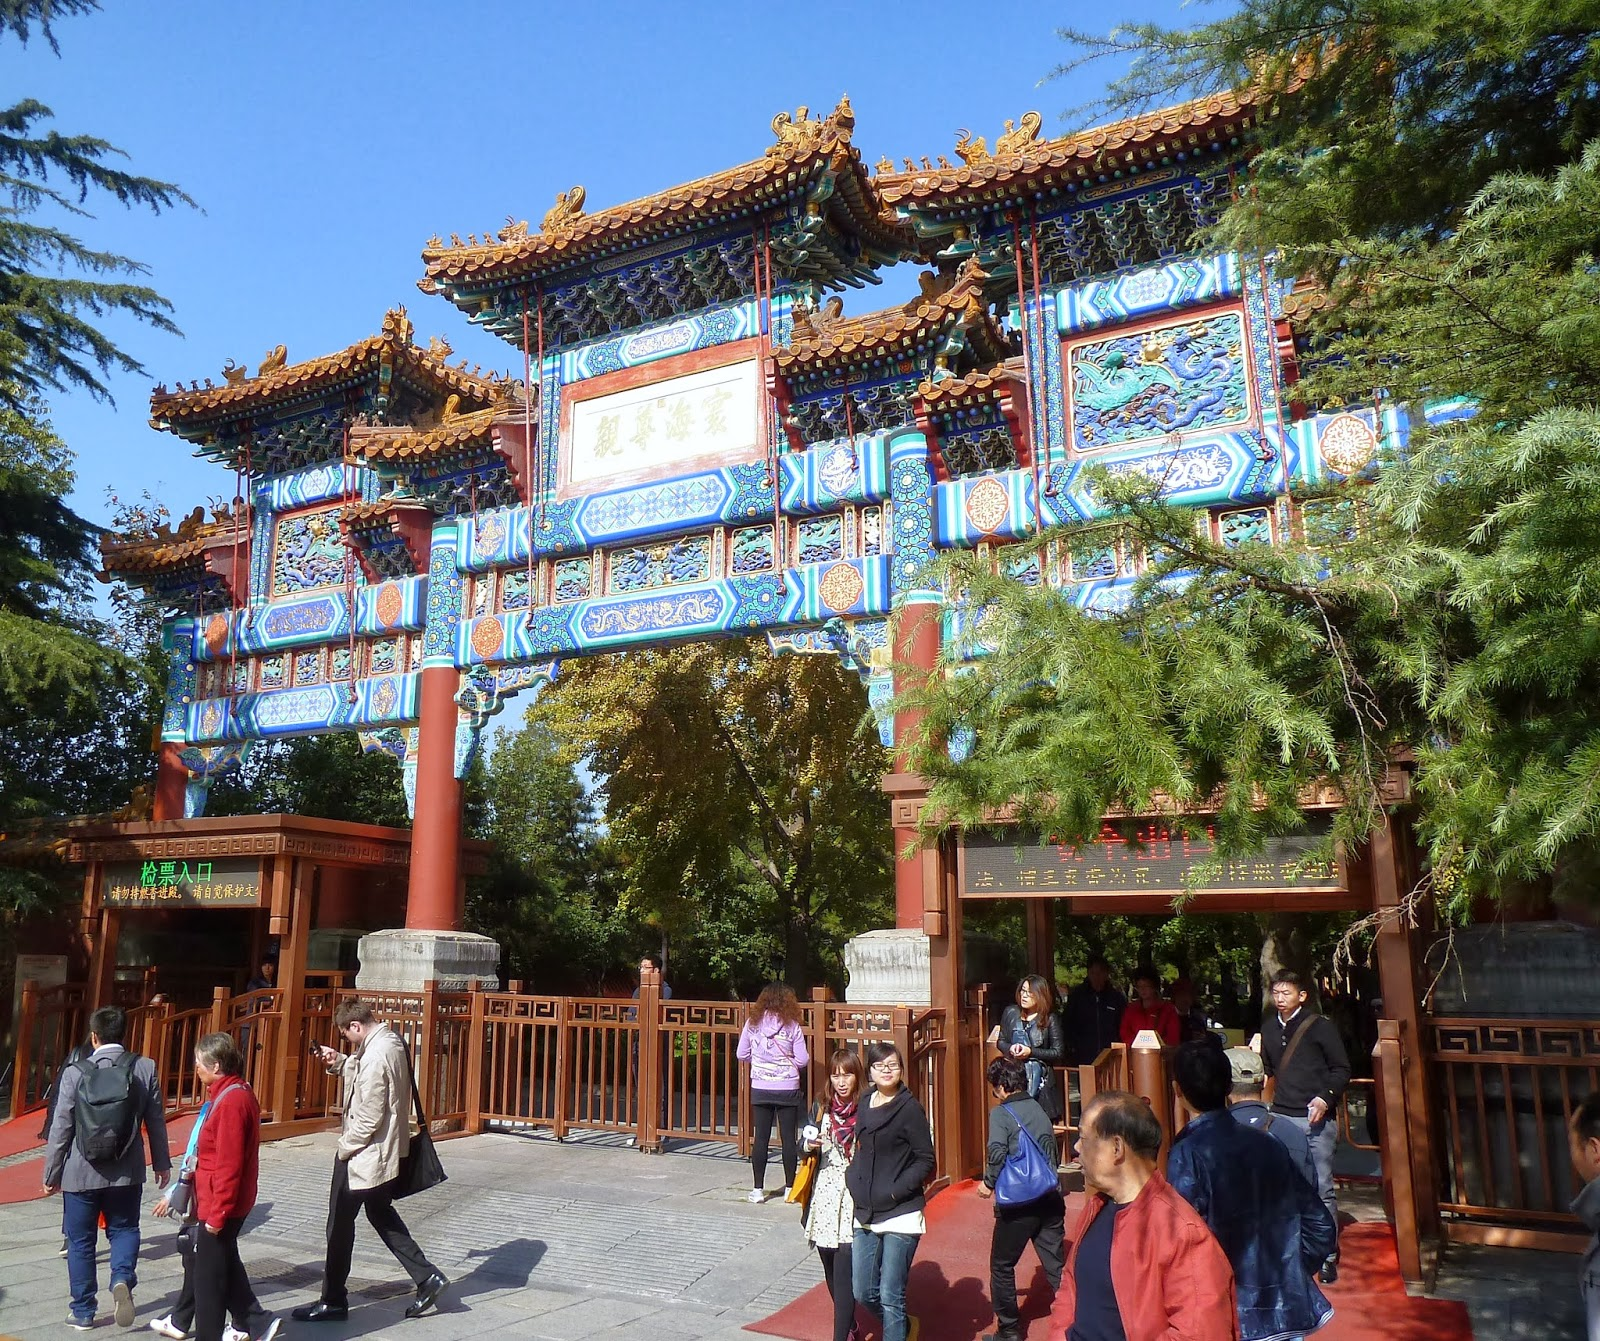 Dalai Lama temple in Beijing